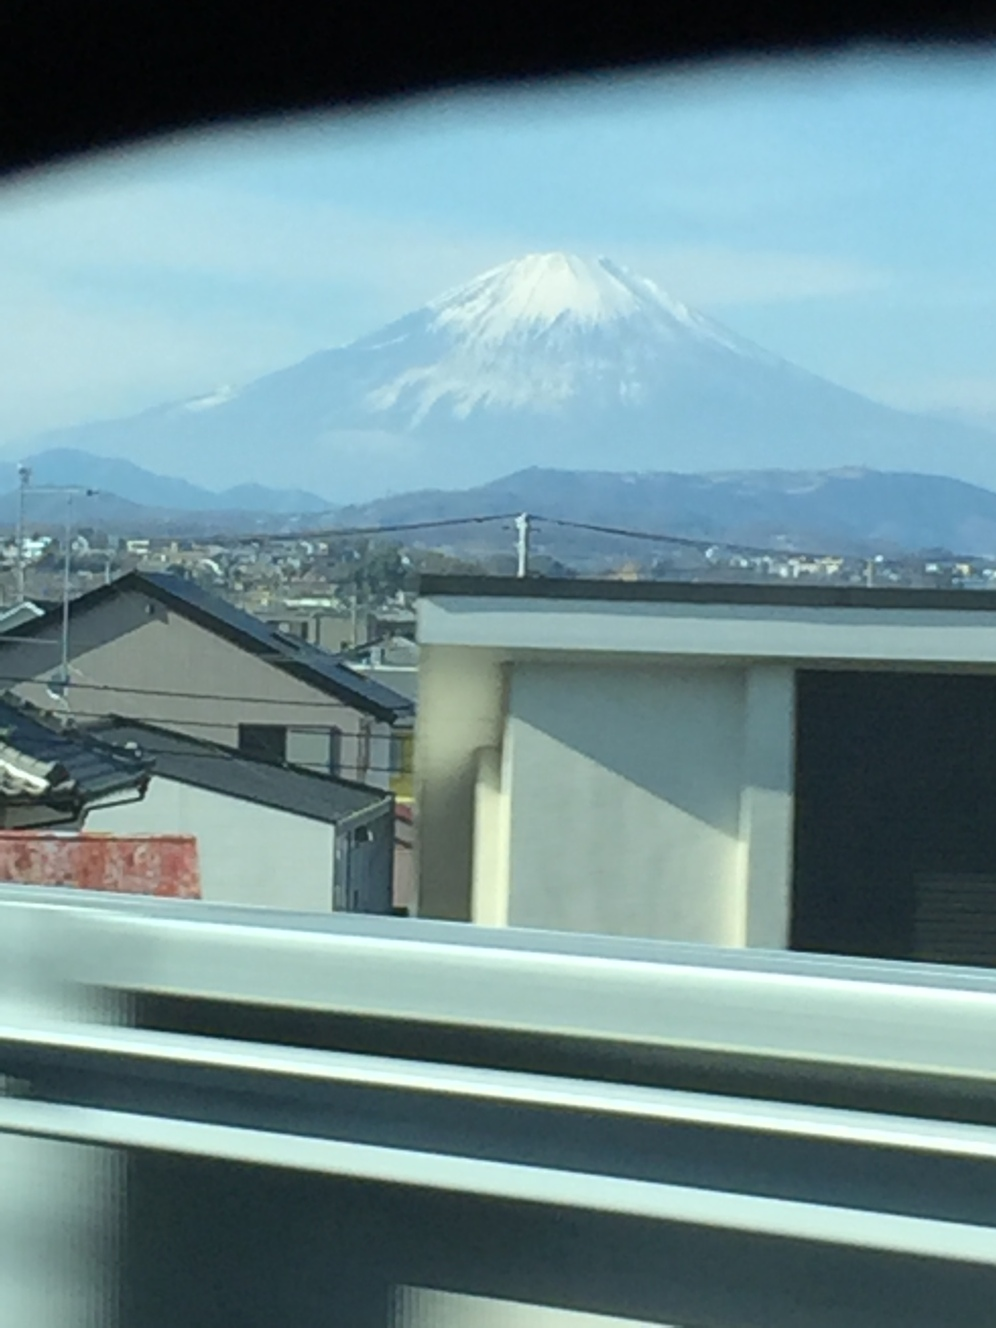 snow covered mount fuji with suburban image in foreground